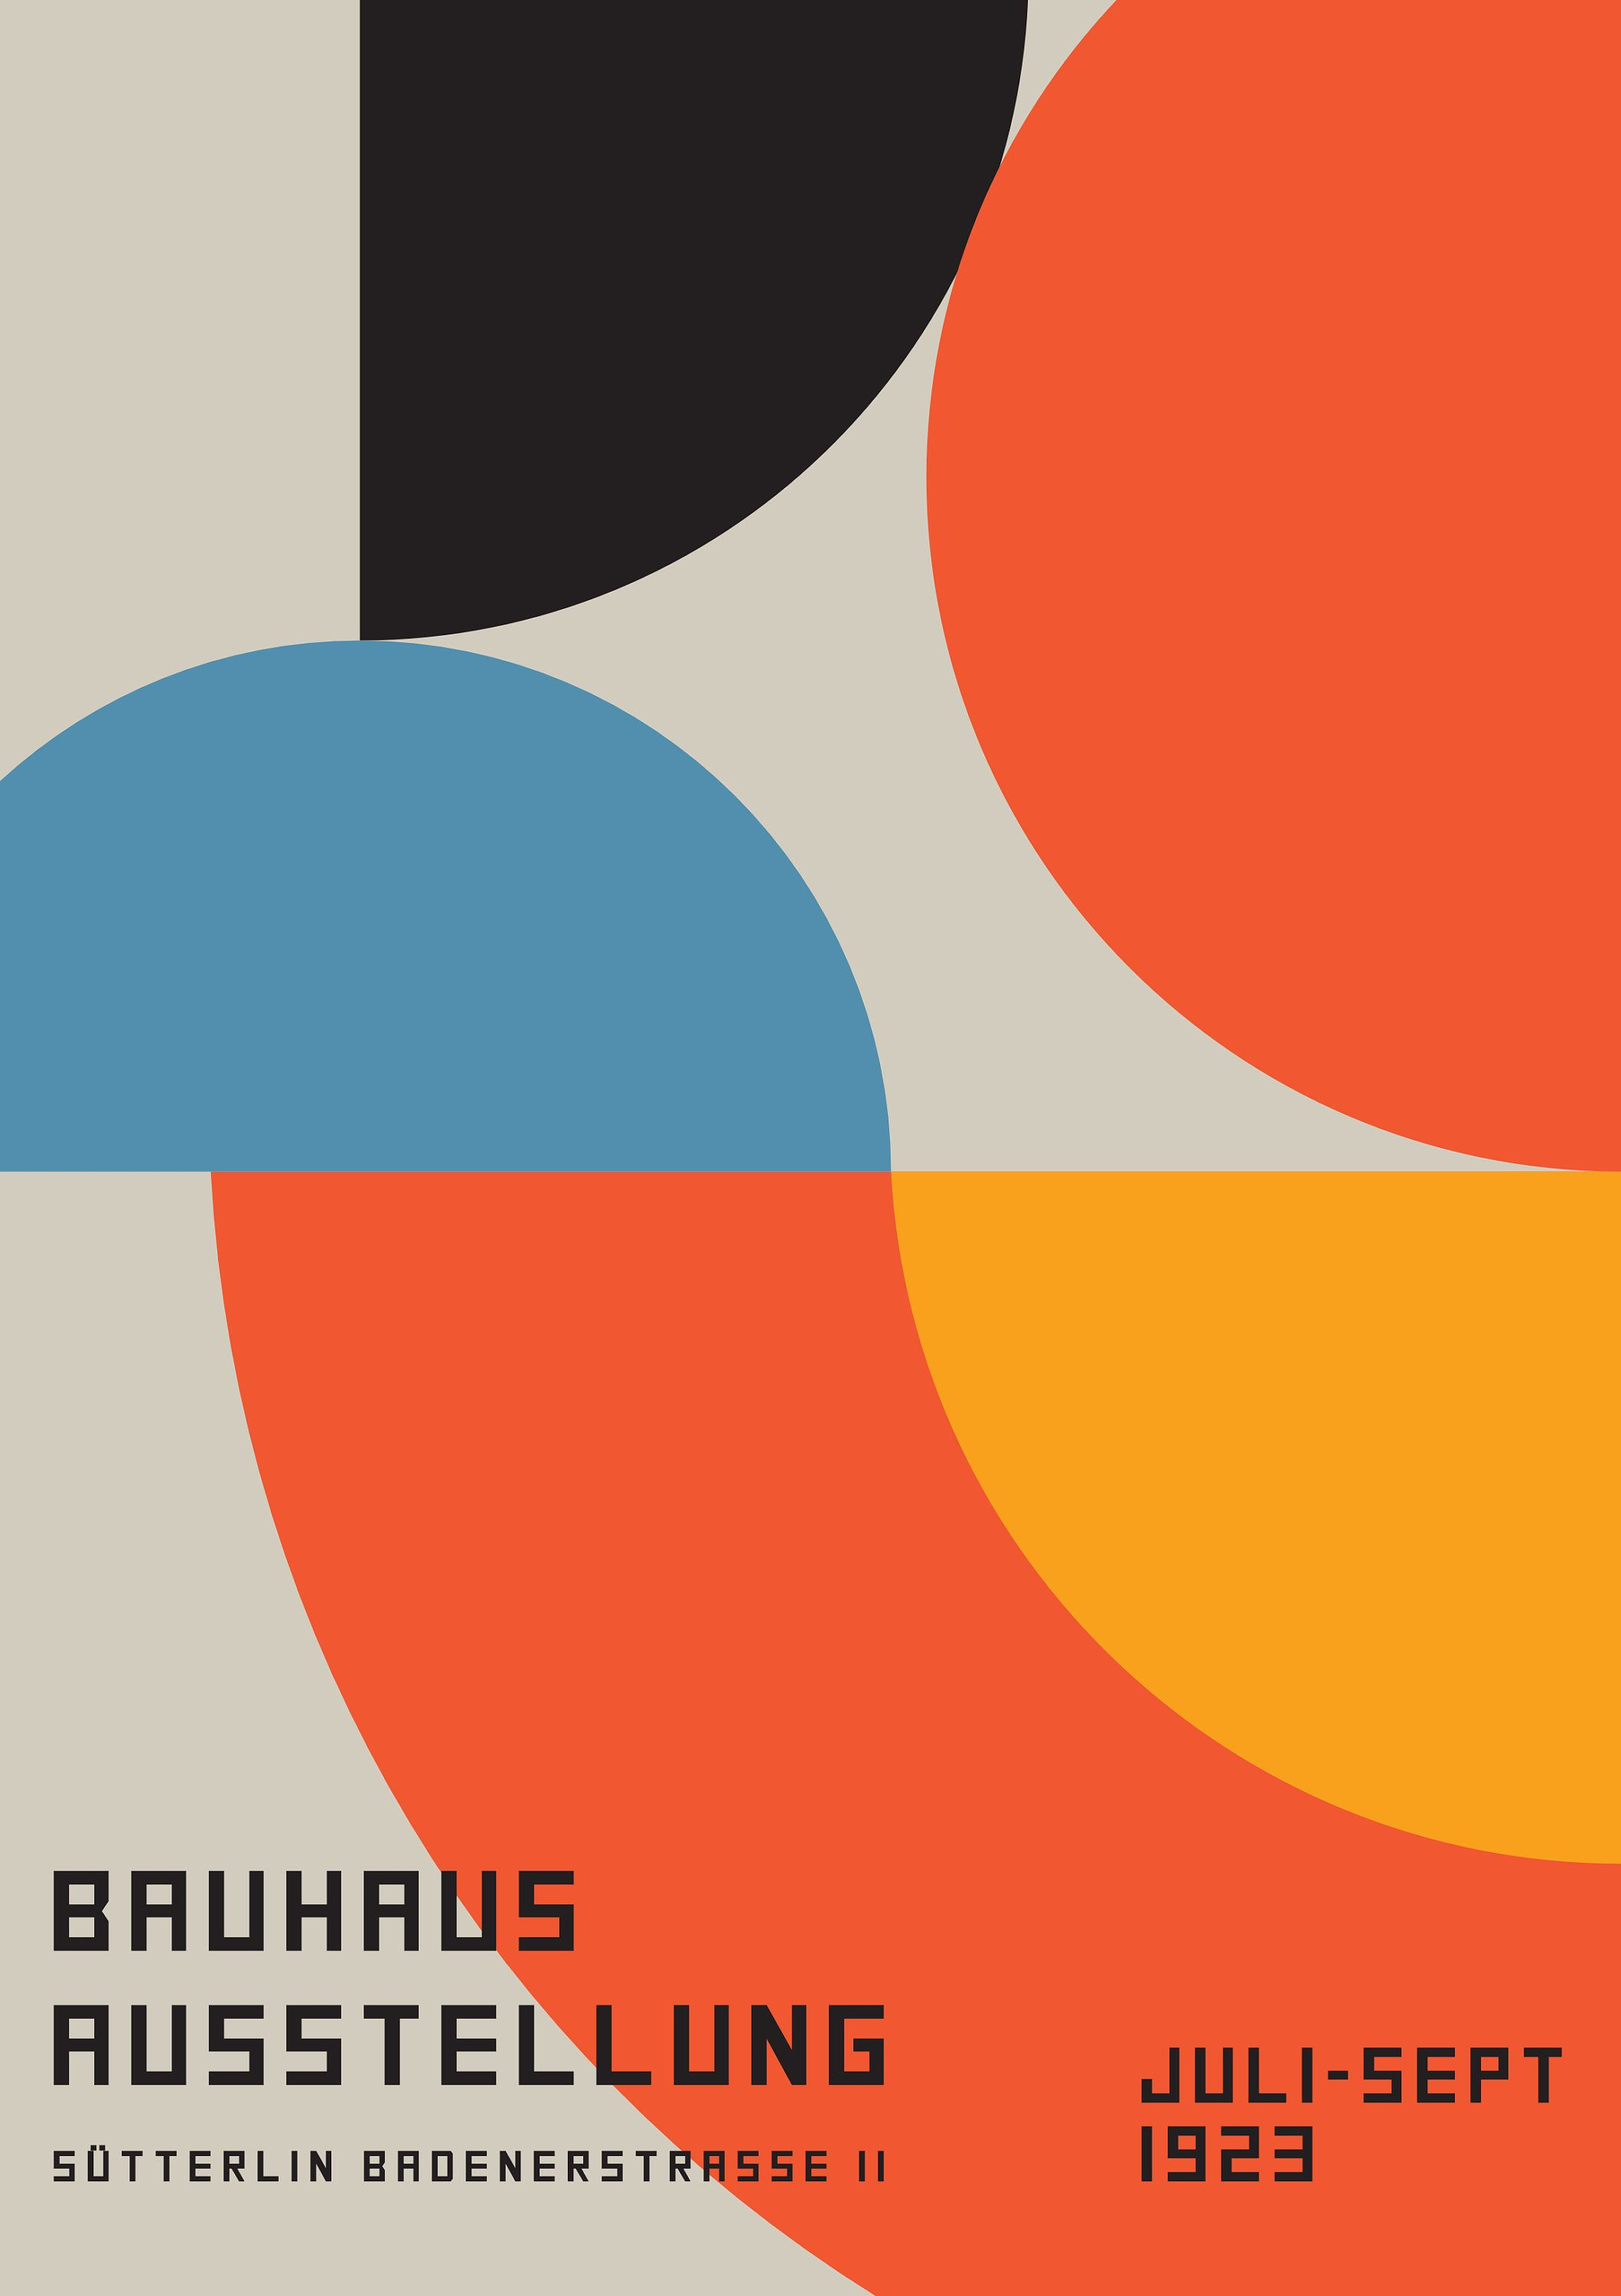 Bauhaus Exhibition Poster Framed Abstract Print 24x36 20x30 18x24 14x20 11x17 Bauhaus Art Bauhaus Bauhaus Design